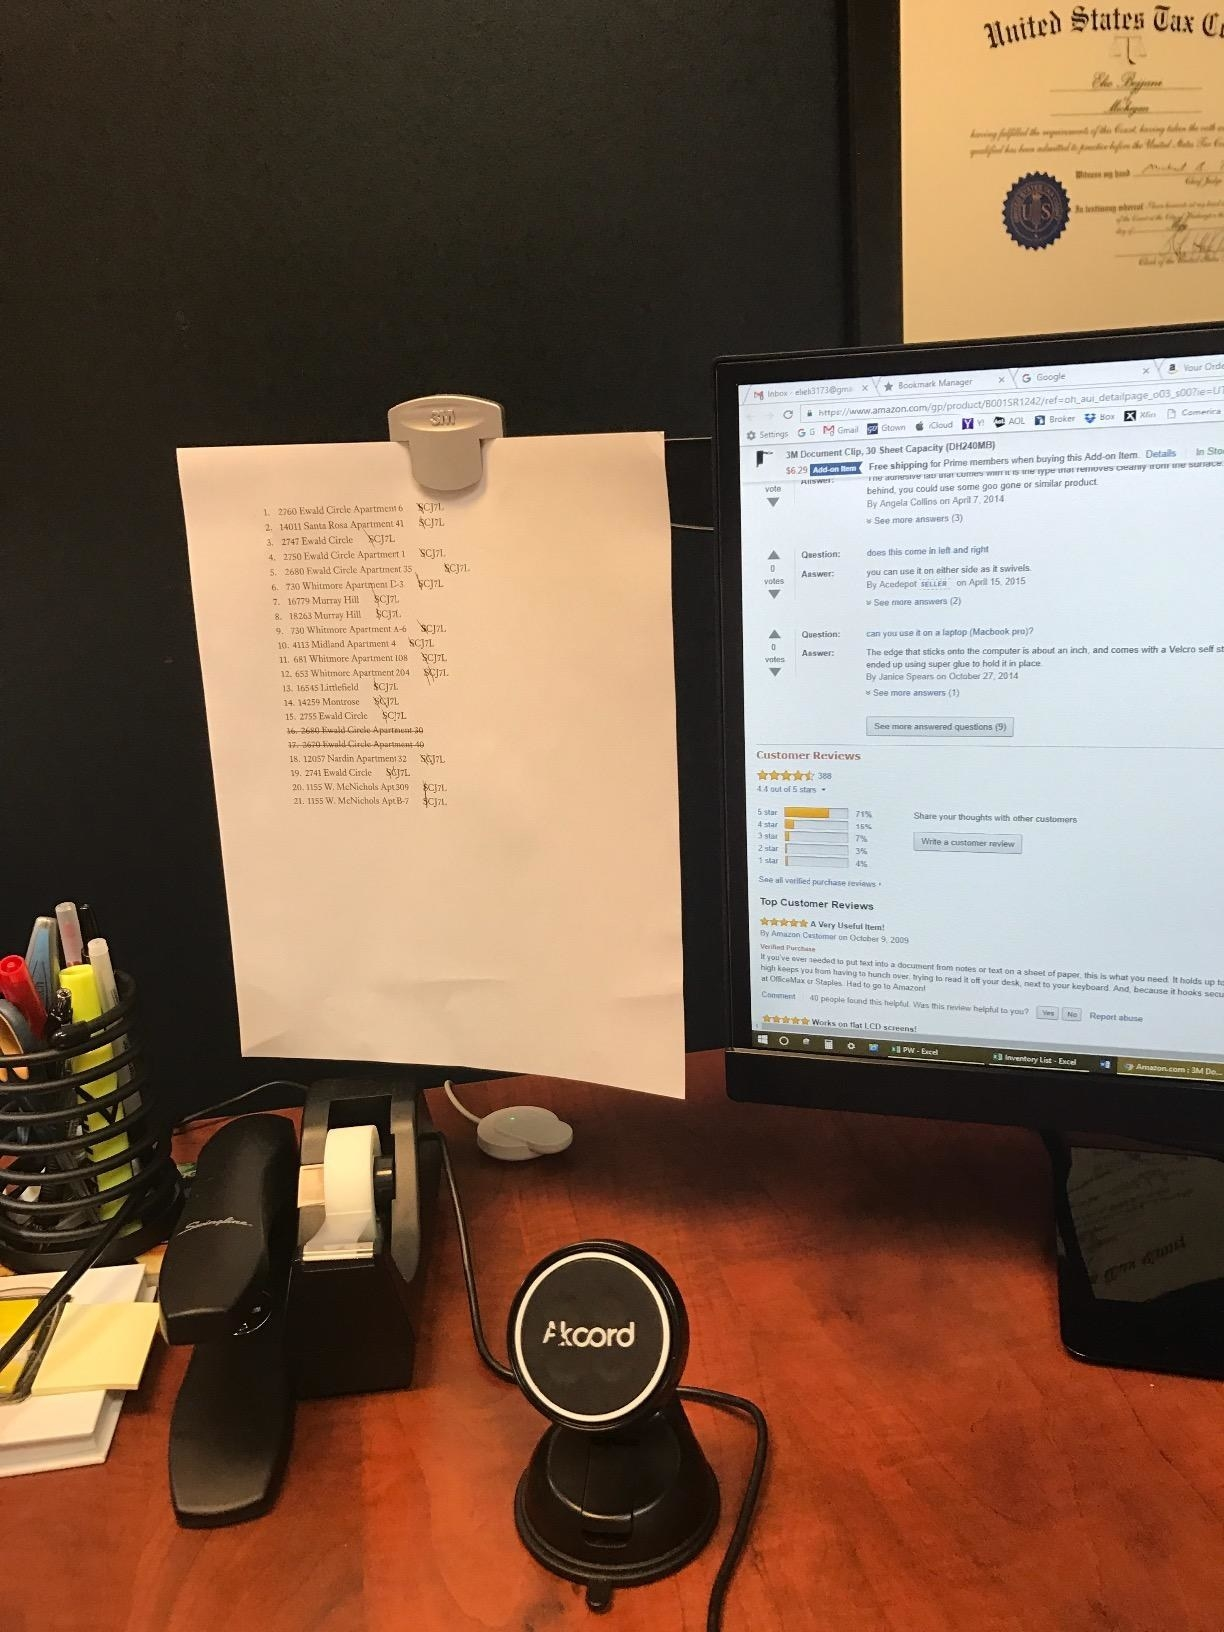 Reviewer photo of the clip holding a document, which is attached to a computer monitor